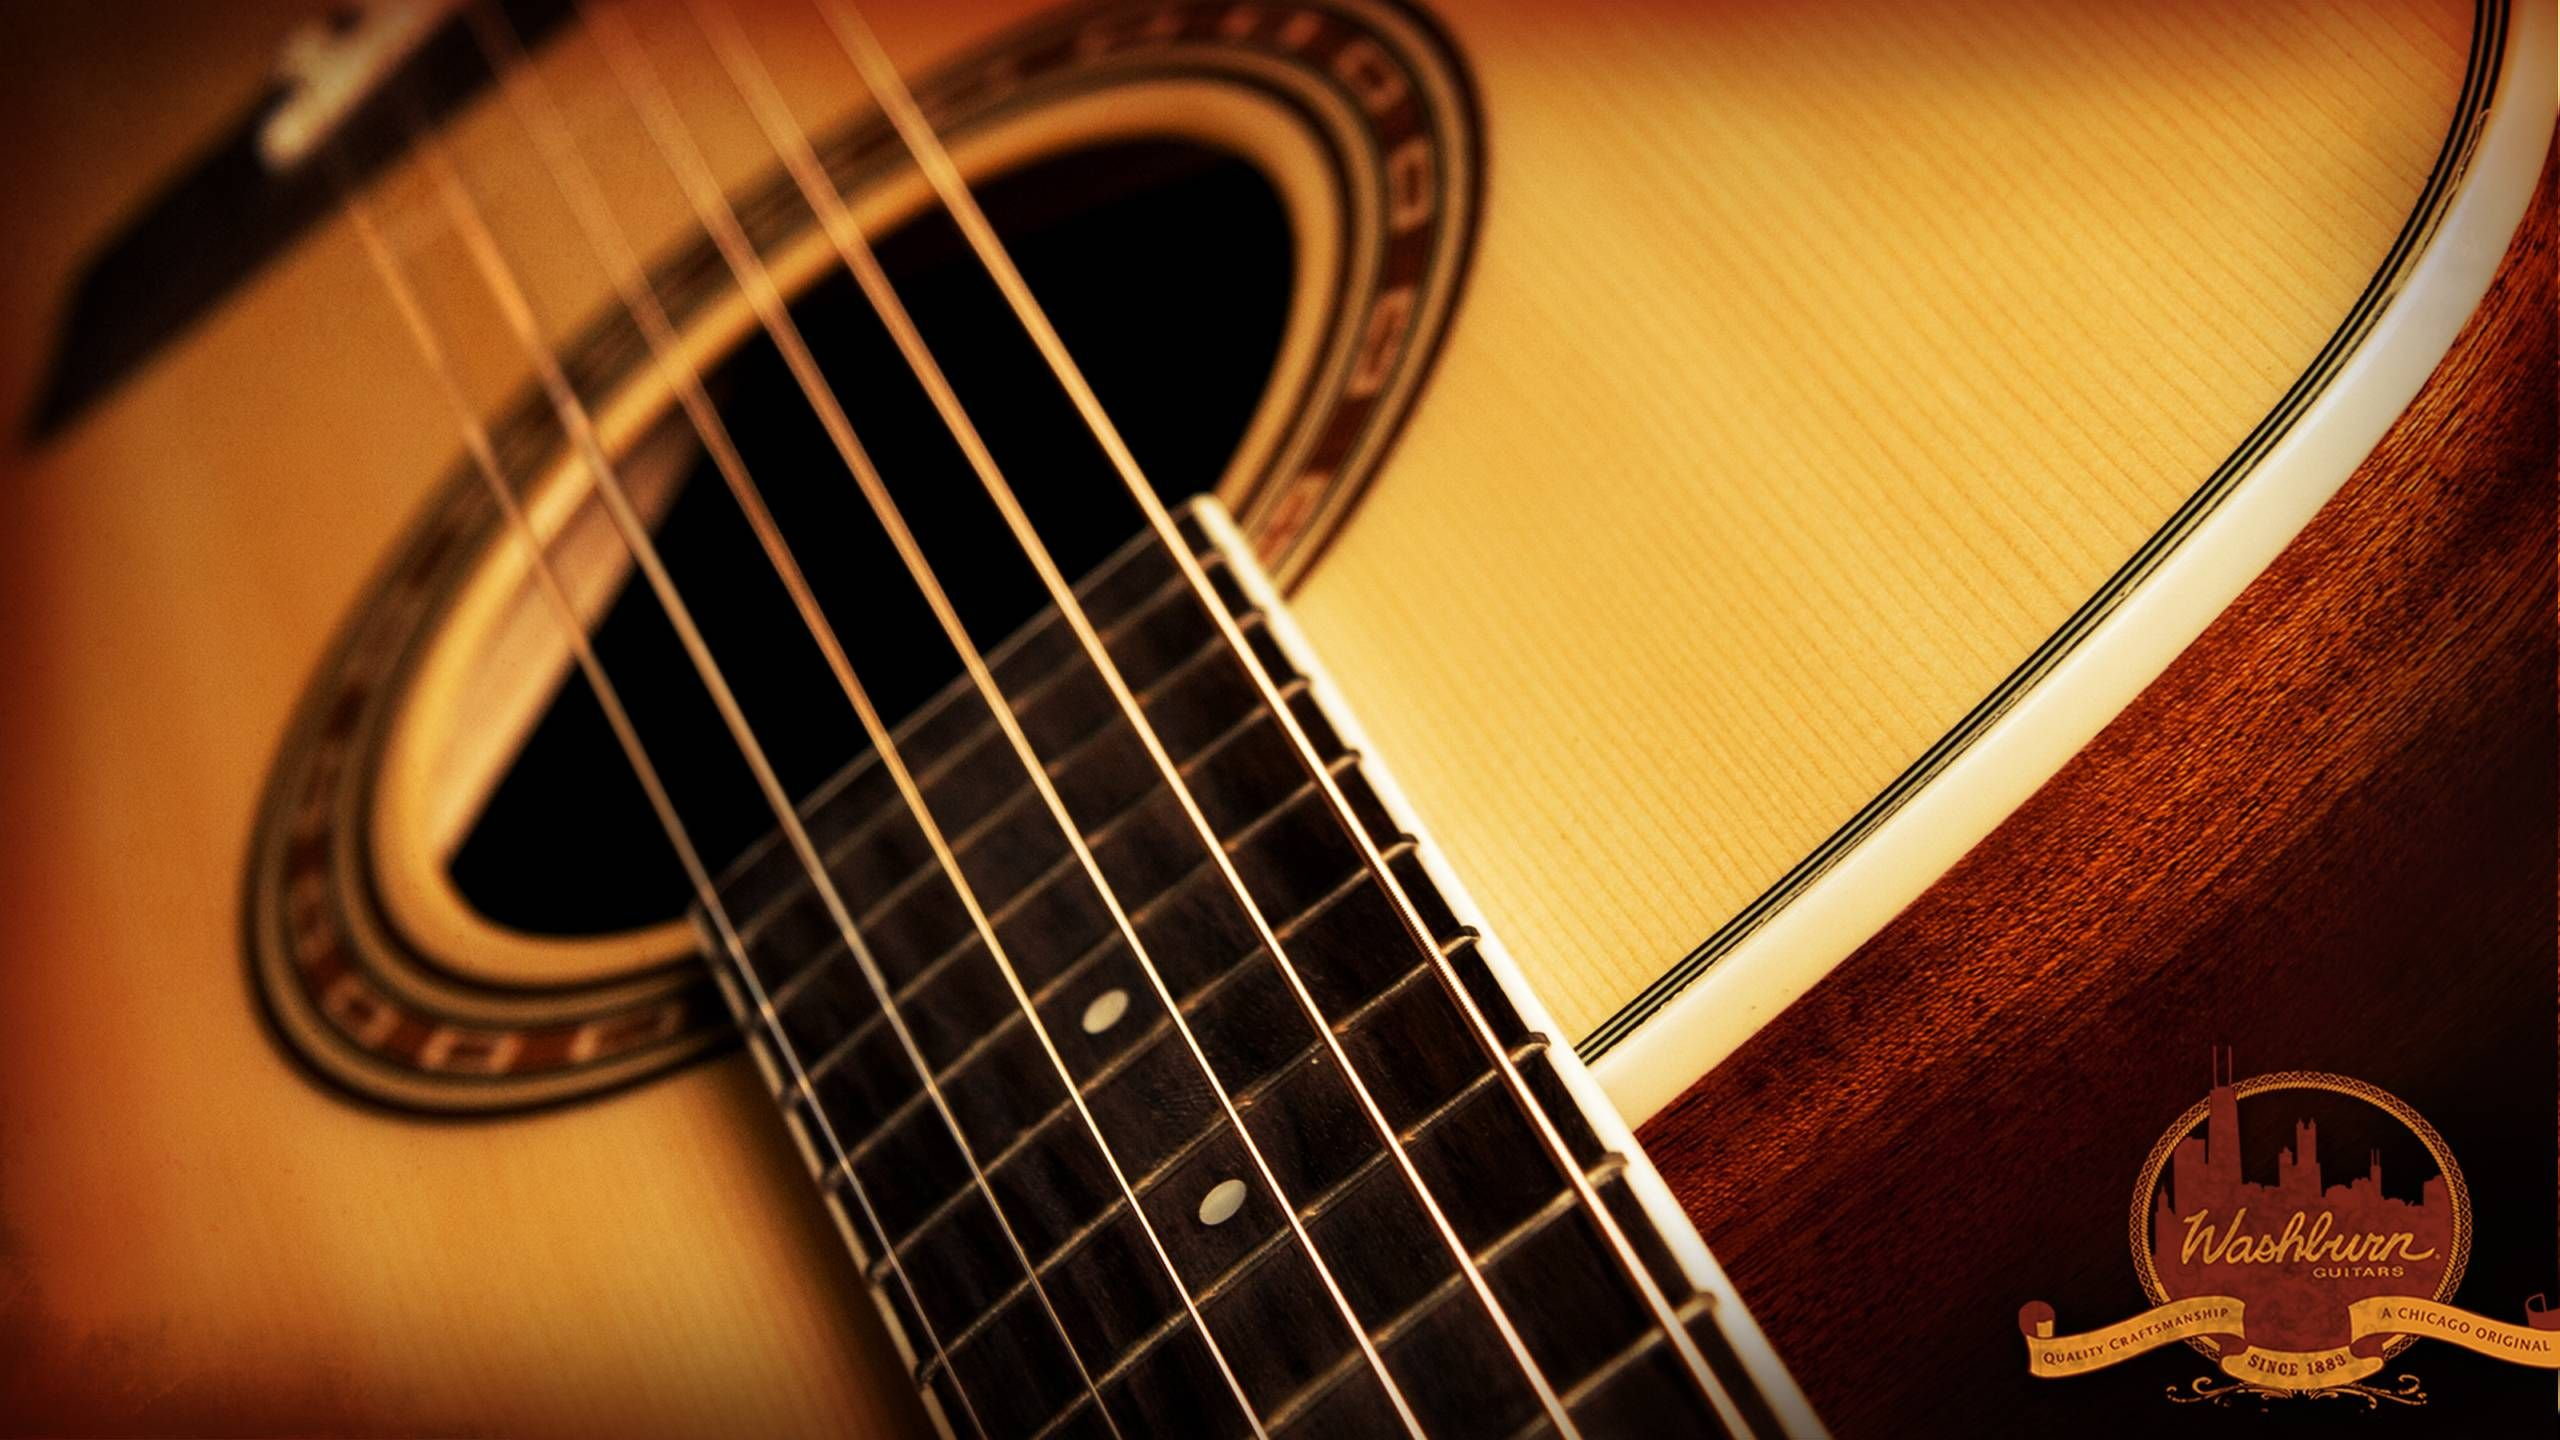 awesome guitar backgrounds wallpaper hd wallpapers pinterest